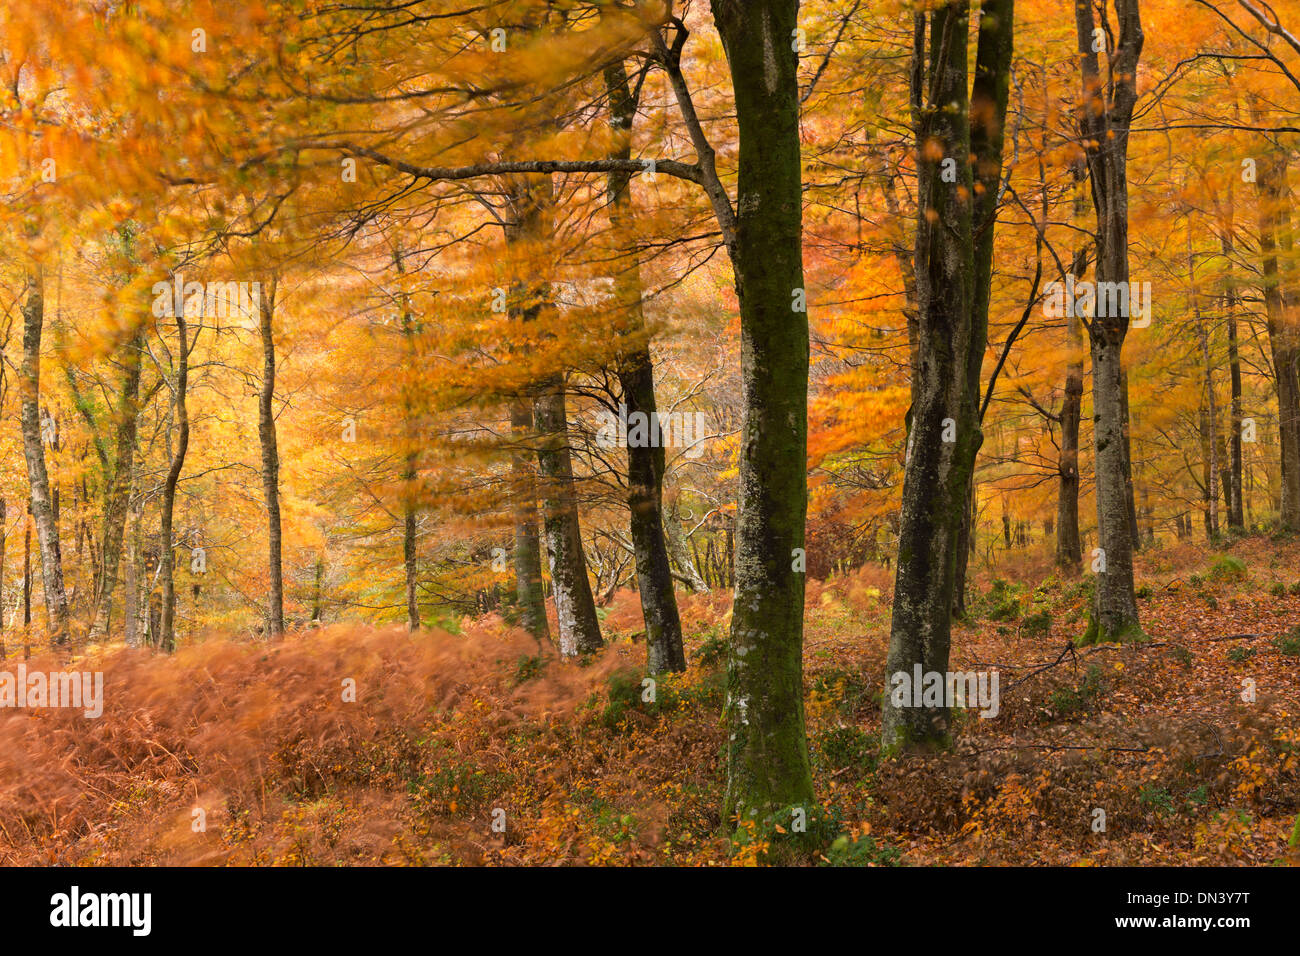 Autumn colours in deciduous woodland, Exmoor National Park, Devon, England. Autumn (November) 2013. - Stock Image